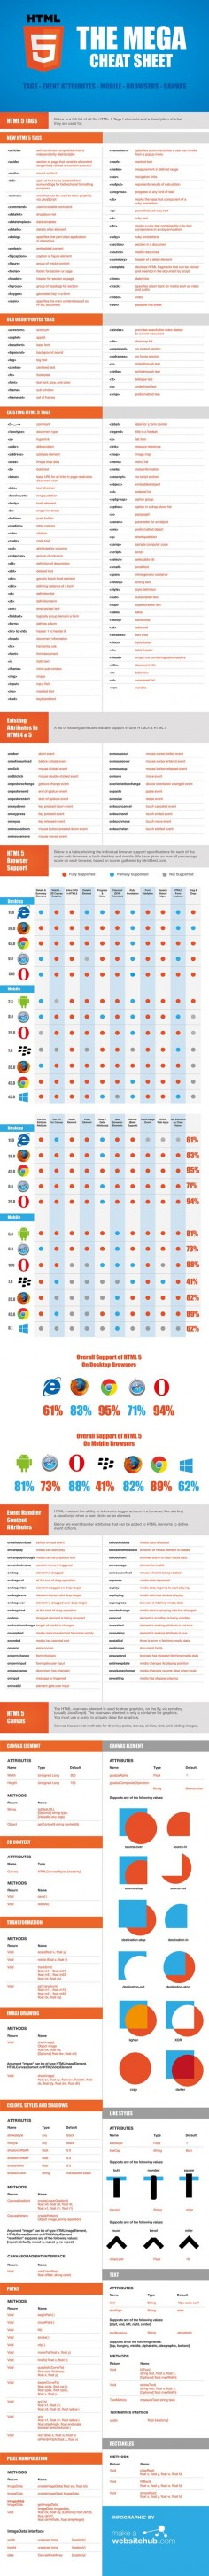 HTML5 - The Mega Cheat Sheet - #infographic